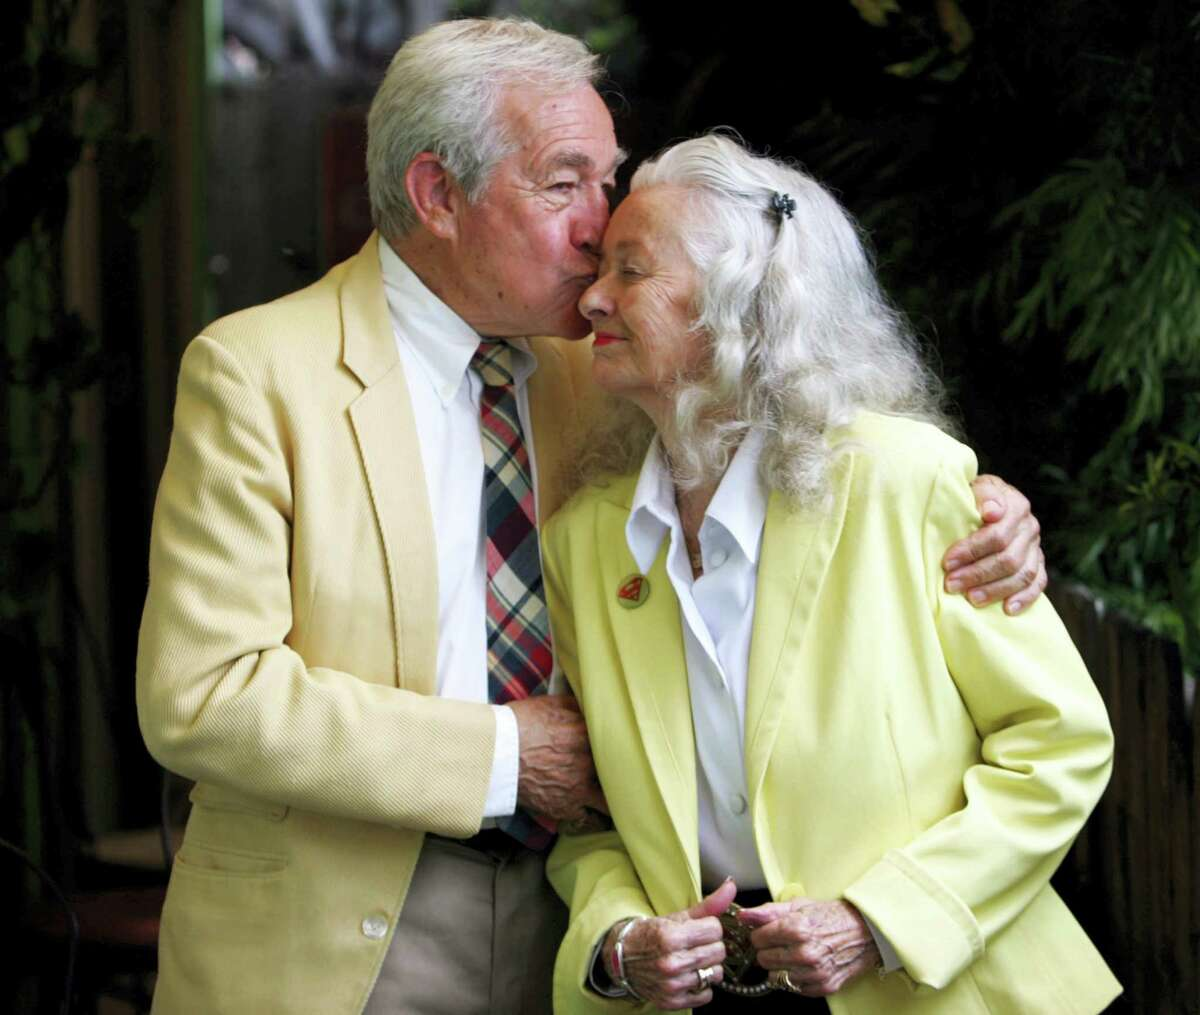 """In this June 21, 2006, file photo, Actors Jack Larson, left, and Noel Neil, who originated the roles of Jimmy Olson and Lois Lane in the 1950s """"Superman"""" television series, pose at Patrick's Roadhouse in the Pacific Palisades area of Los Angeles. The actress who was the first to play Superman's love interest, Lois Lane, on screen has died. Neill was 95. Neill's biographer Larry Ward tells The Associated Press that she died Sunday, July 3, 2016, at her home in Tucson, Ariz., following a long illness."""